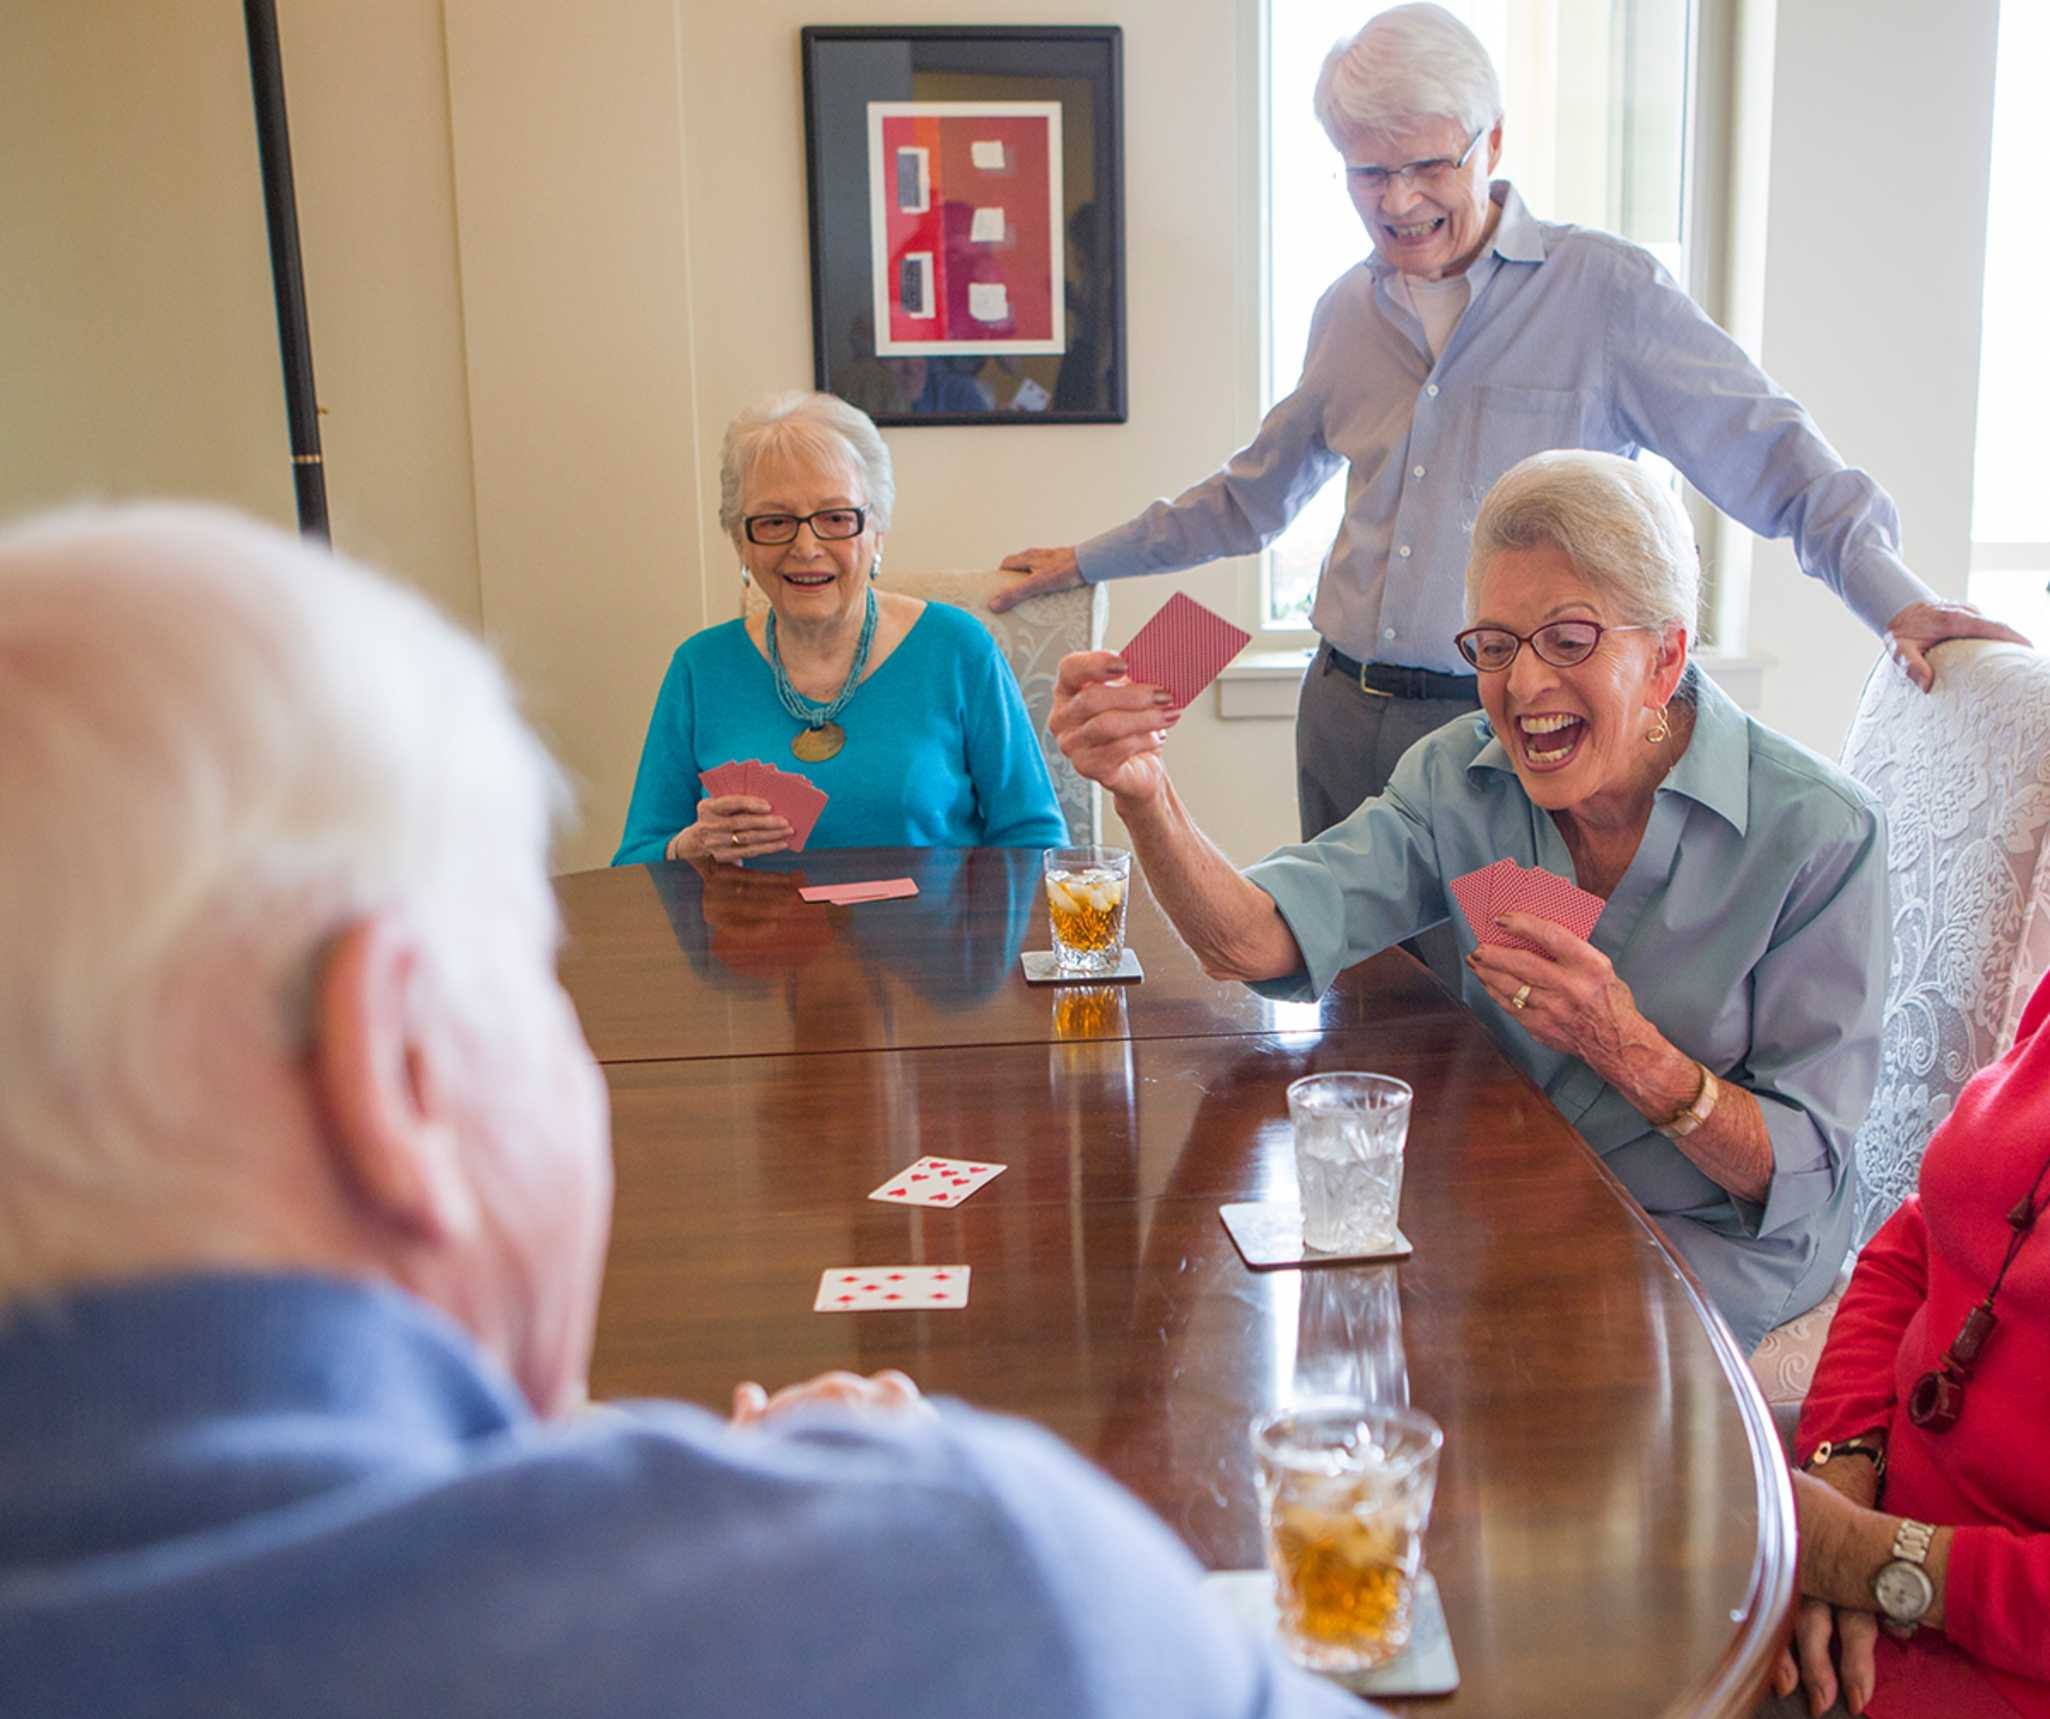 senior community residents play an exciting card game together